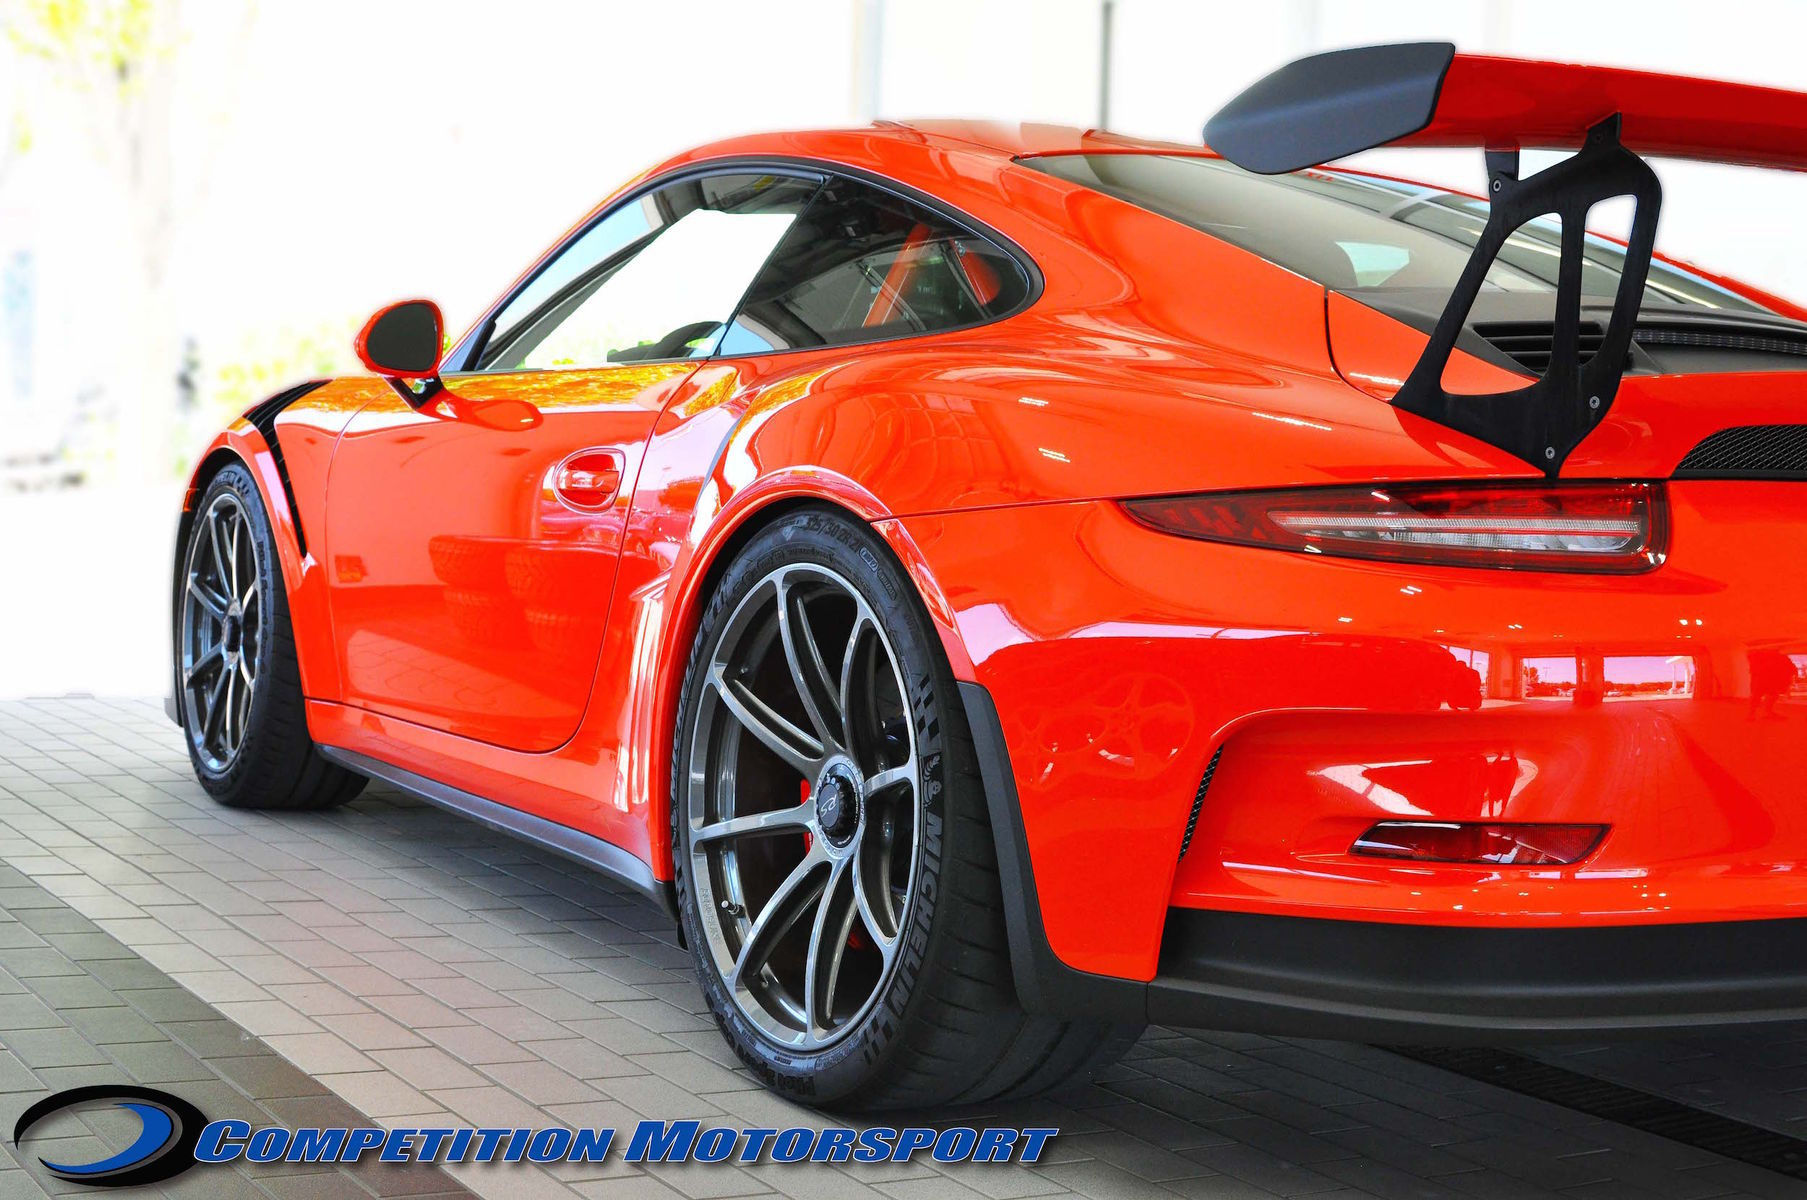 2016 Porsche 911 | Brian Ringwelski's Porsche 991 GT3RS on Forgeline One Piece Forged Monoblock GE1 Wheels - Side Shot